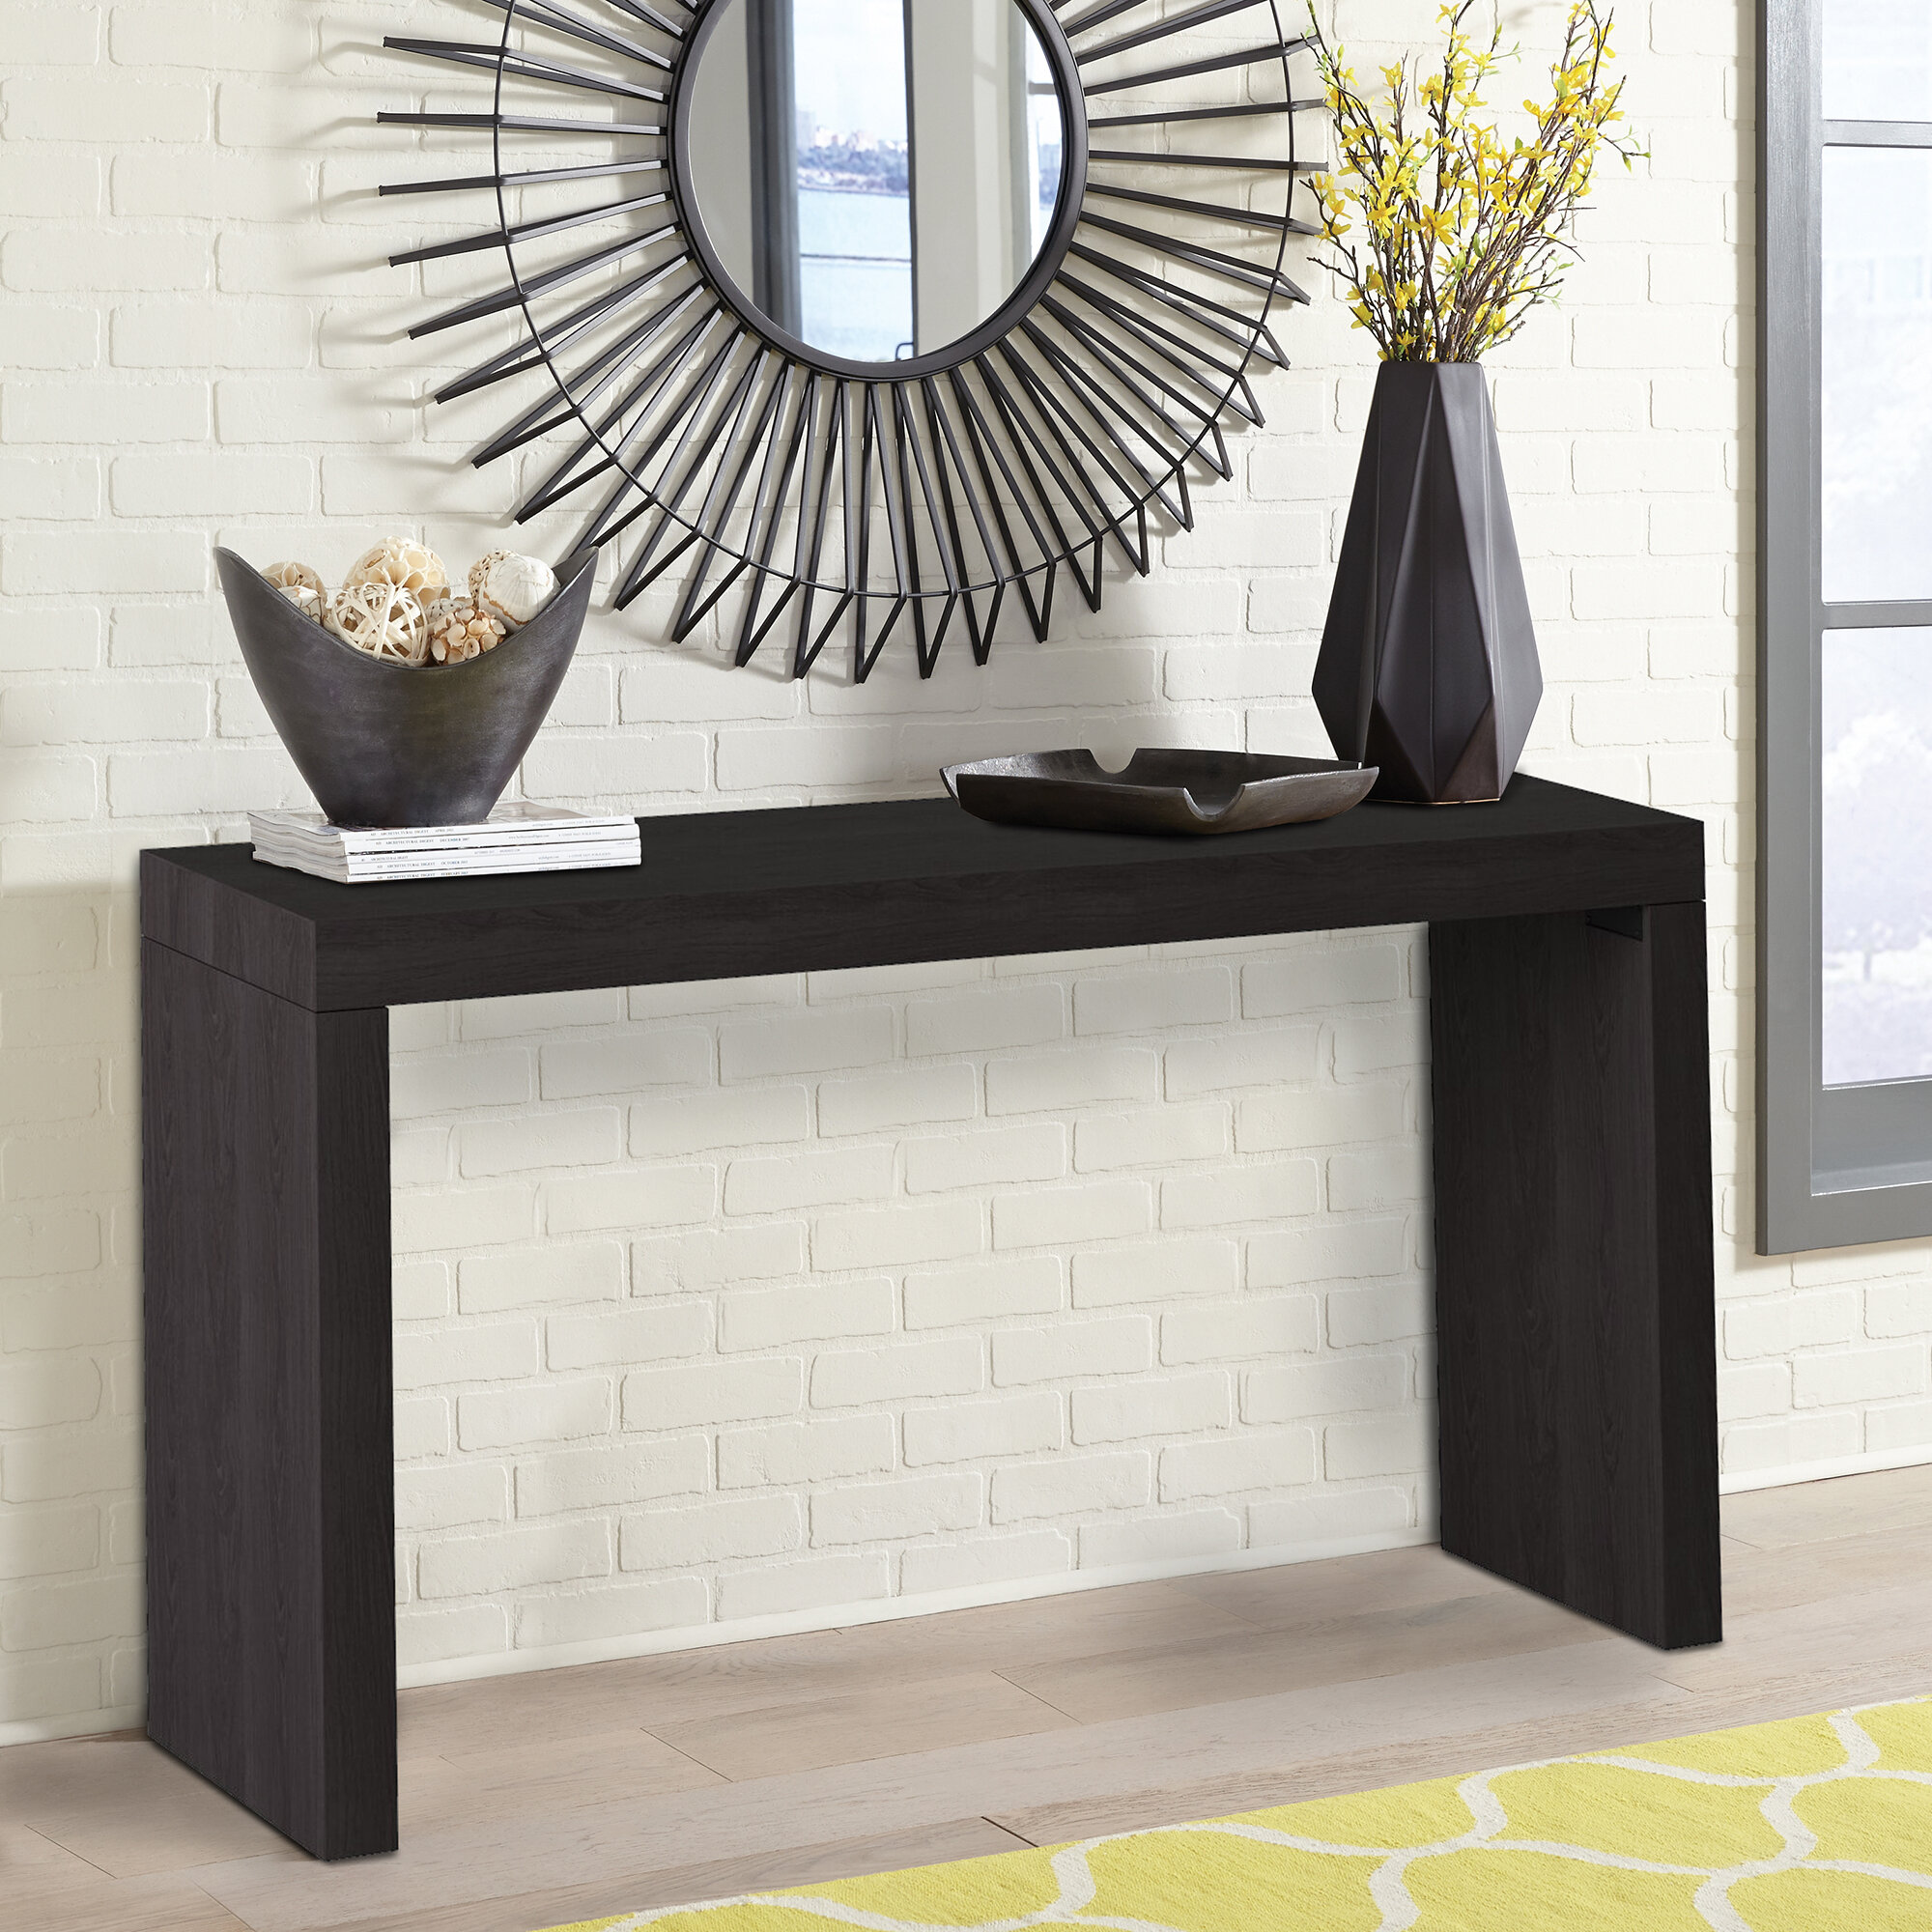 Candace Console Table Reviews Joss Main